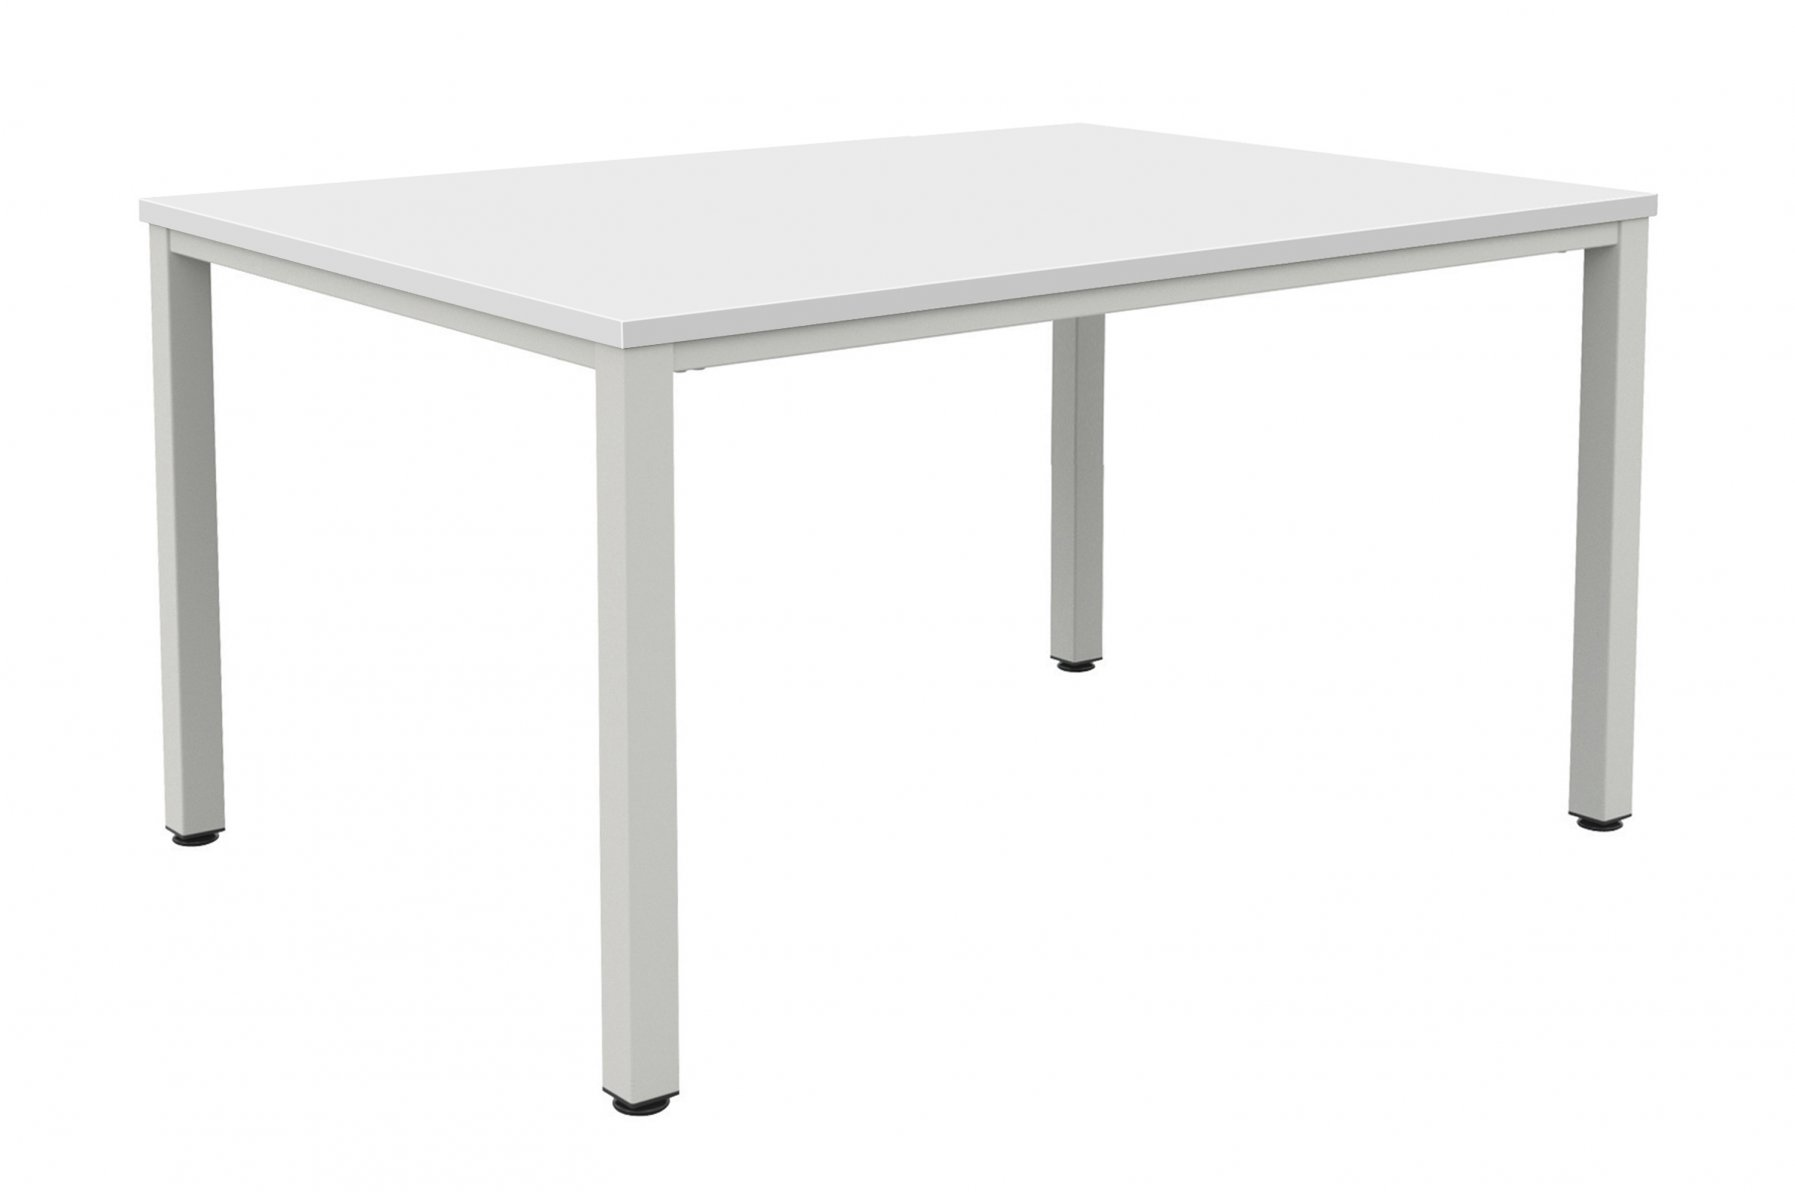 Fraction Infinity 140 x 80 Meeting Table - White with Silver Legs